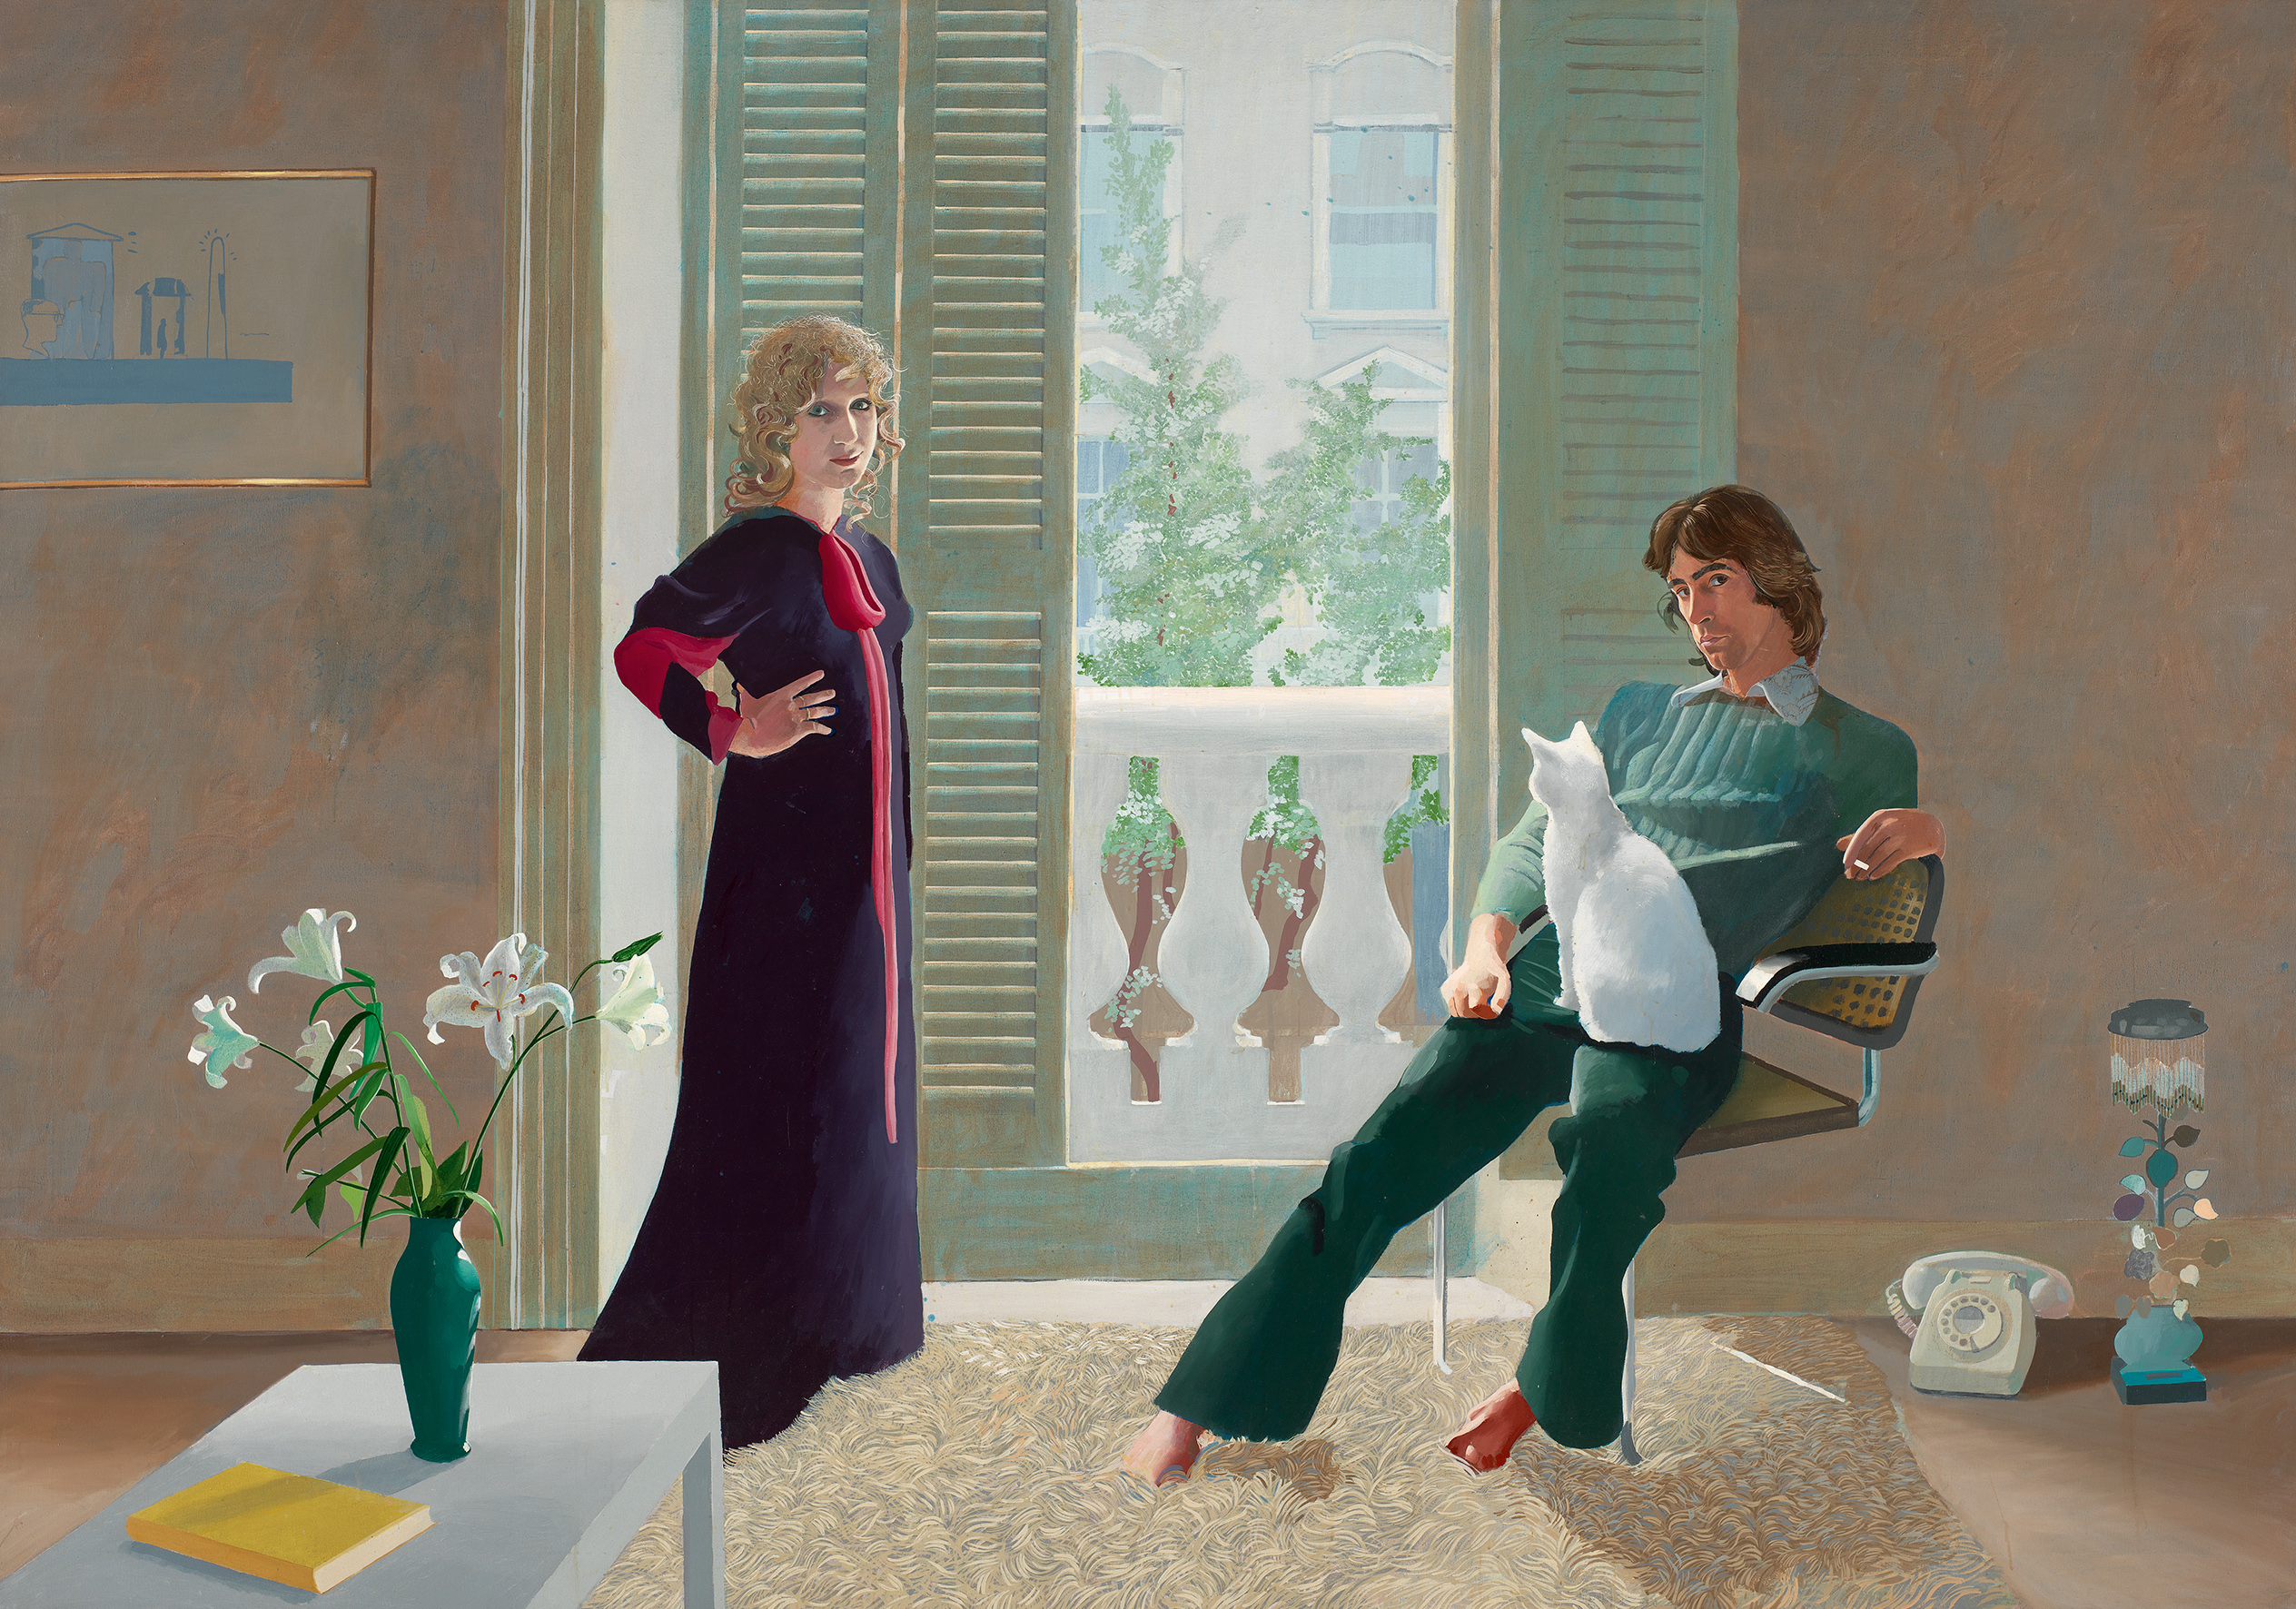 David Hockney: Mr and Mrs Clark and Percy, 1970/71, © David Hockney, Foto: Tate